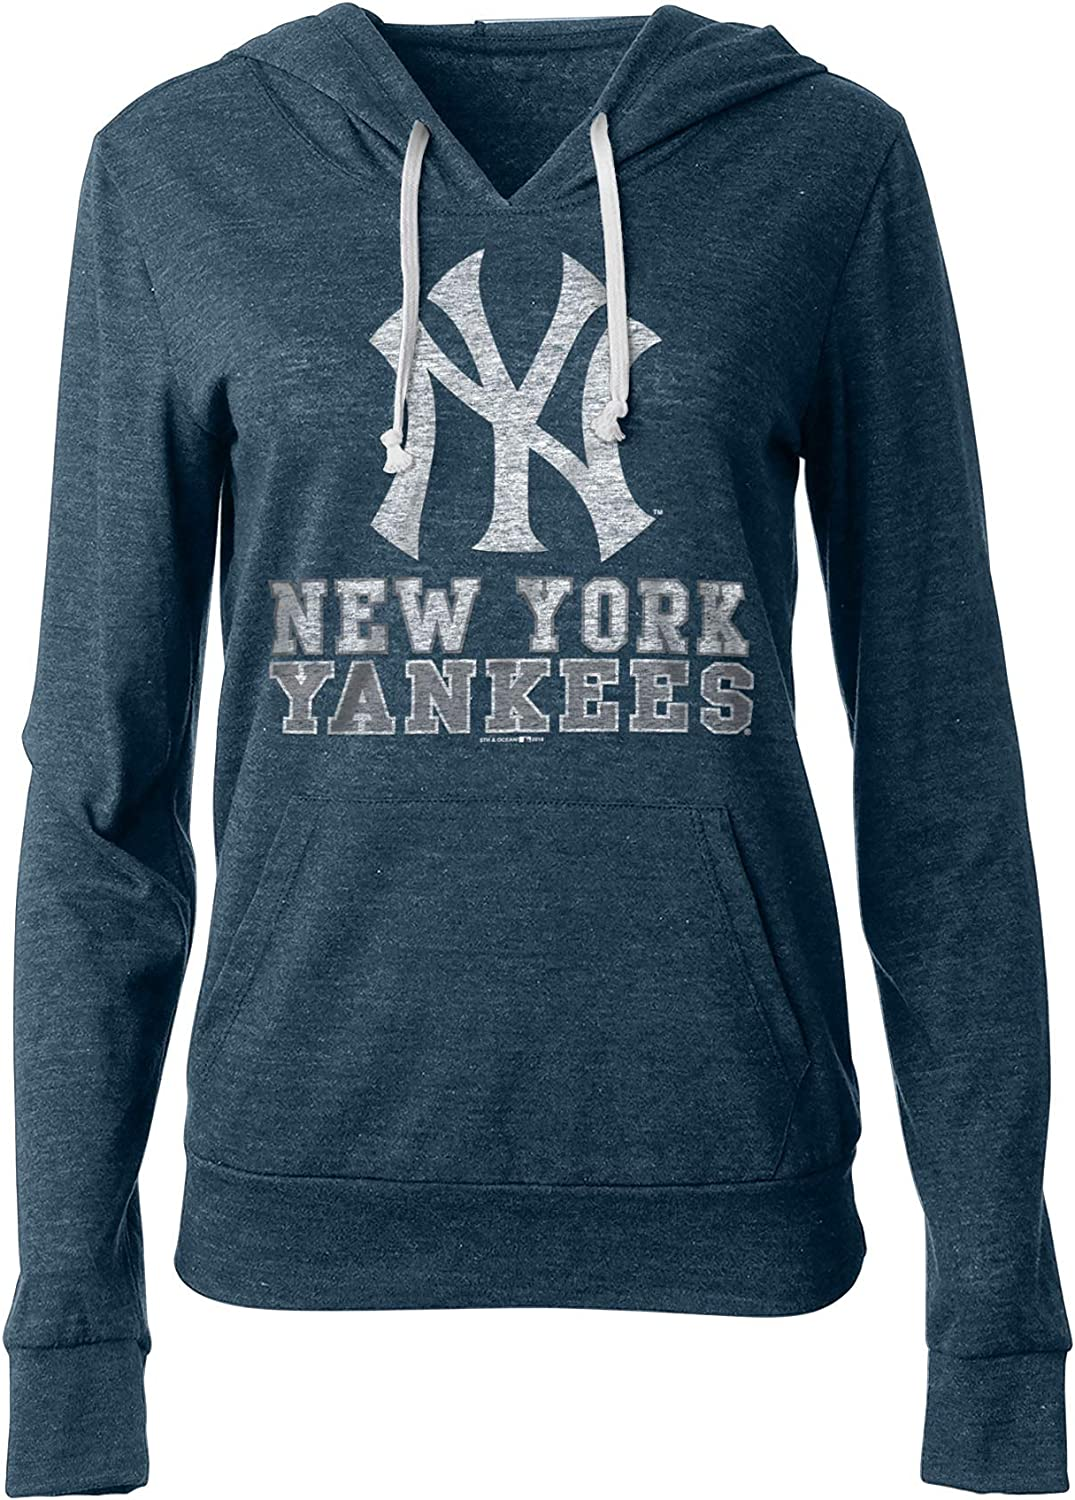 Navy 47 New York Yankees Mens Team Logo Headline Pullover Hoody Sweatshirt